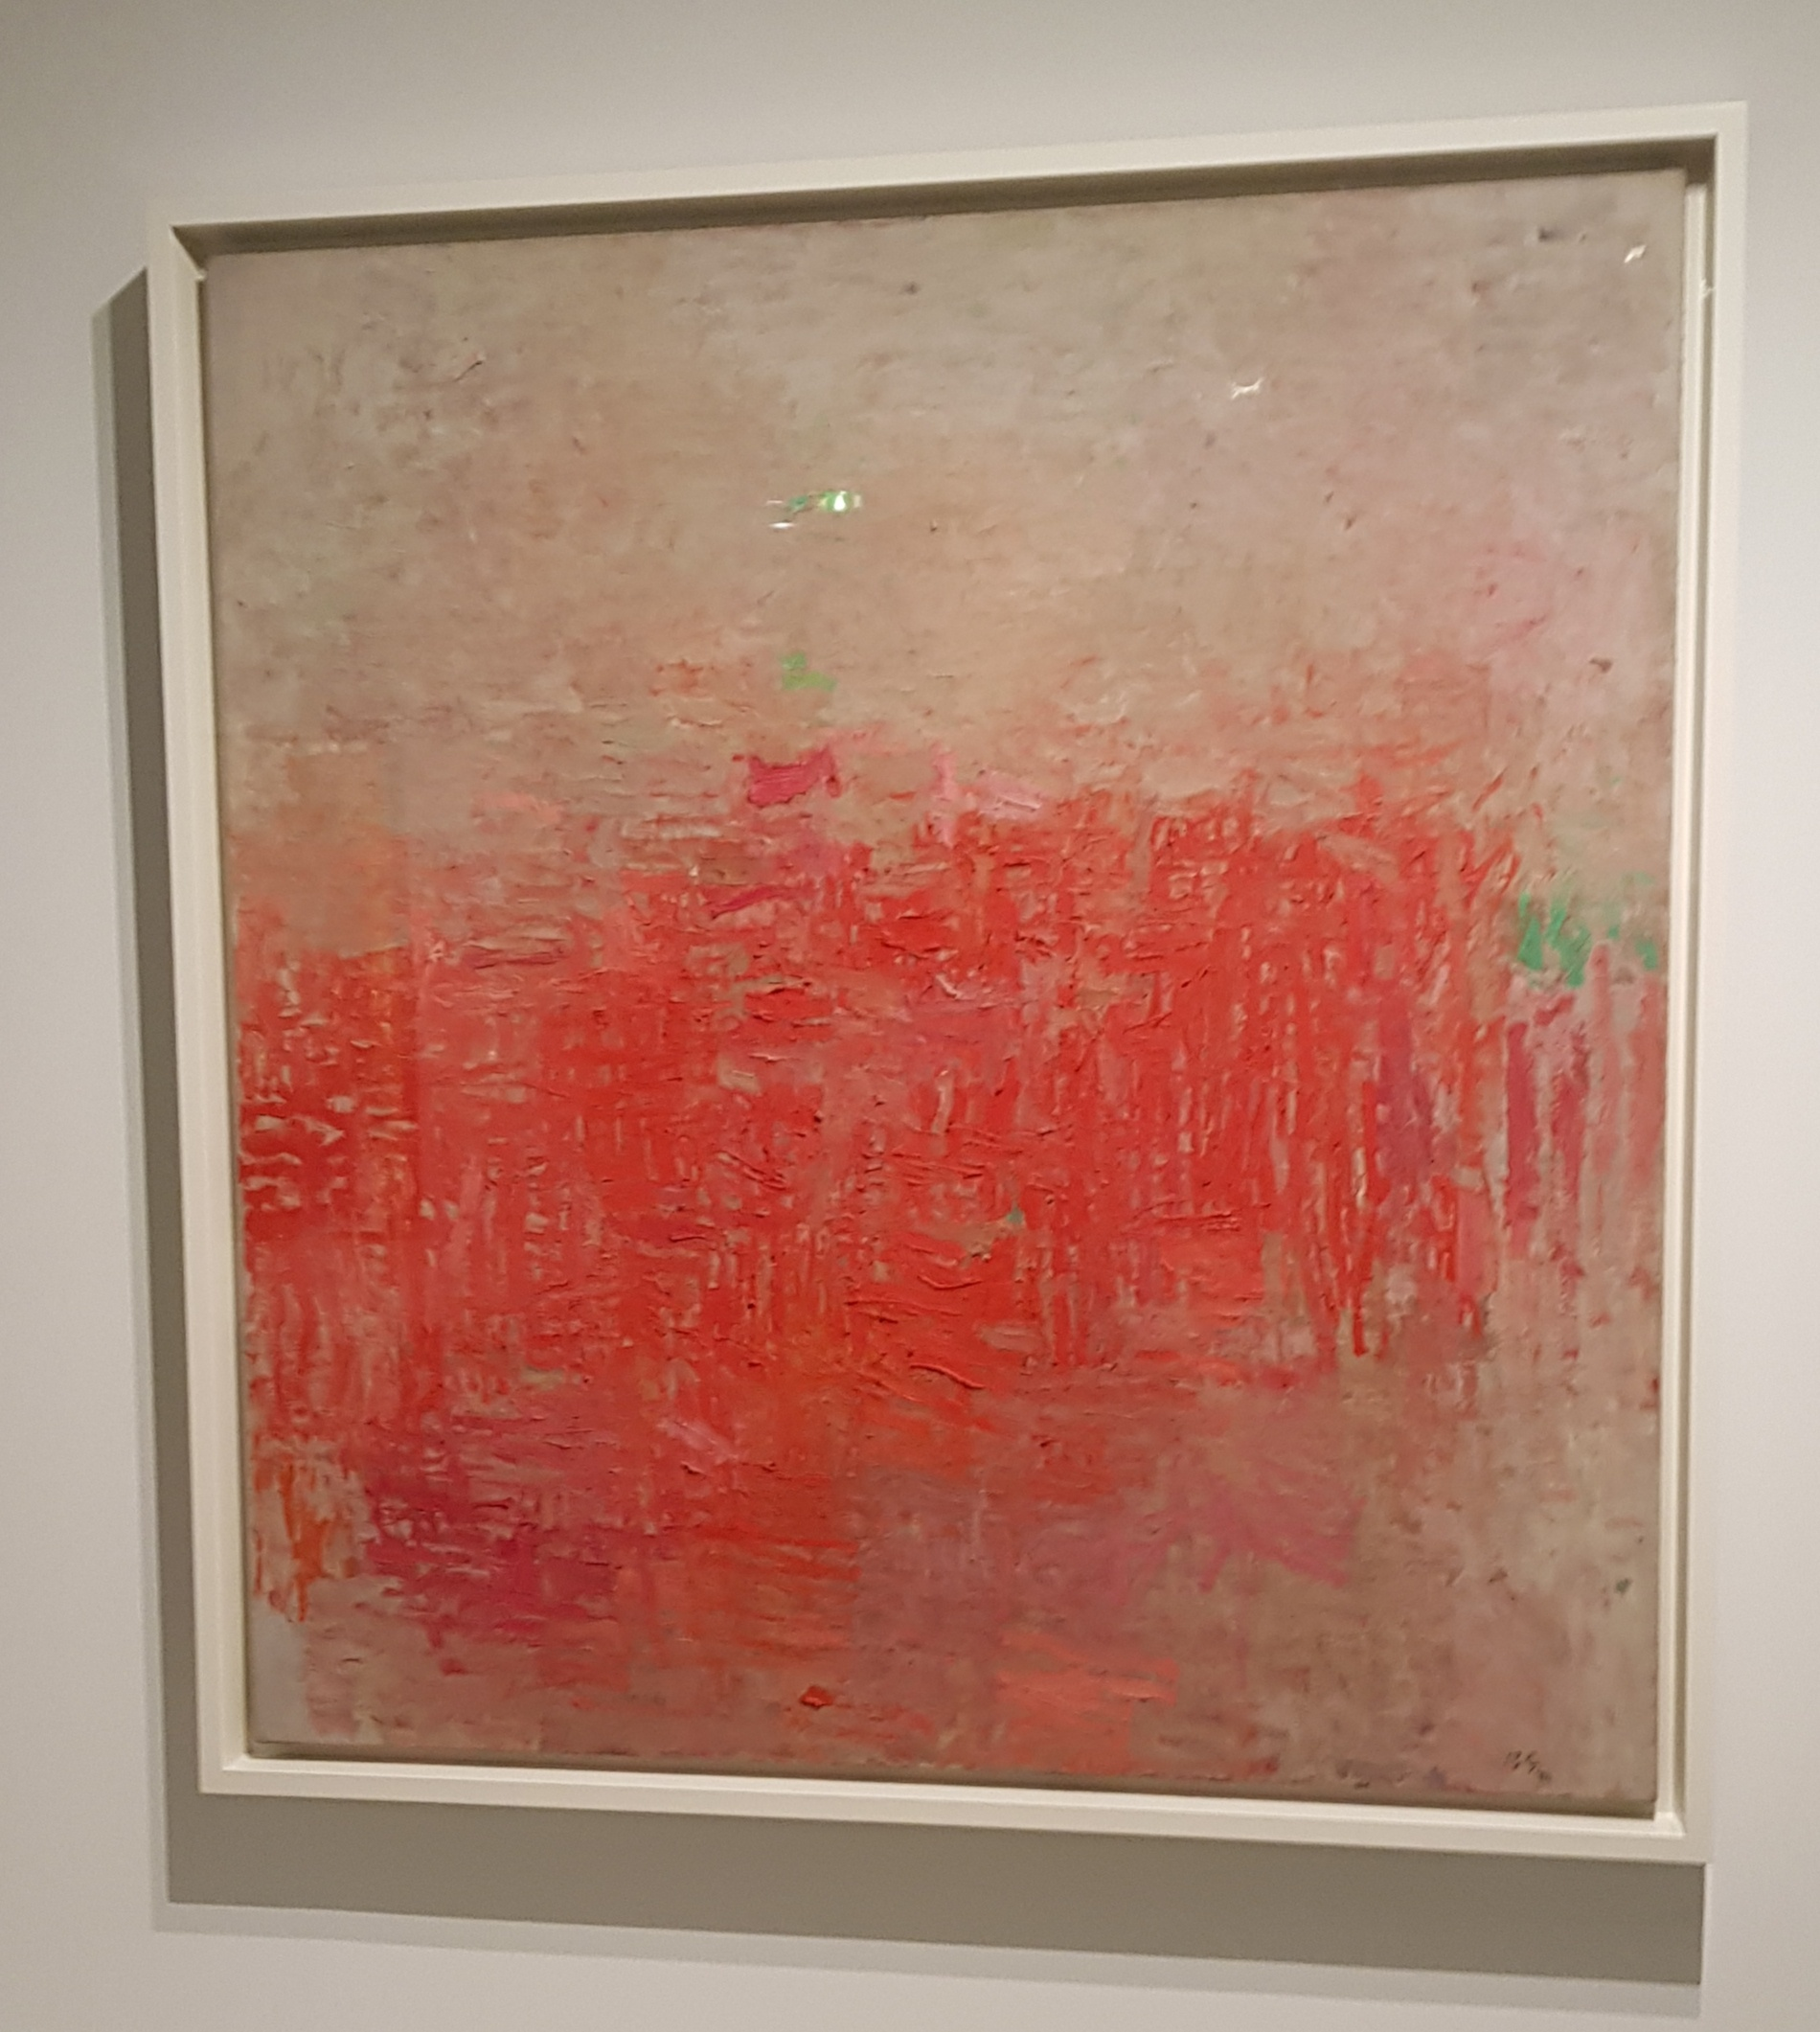 Painting de Philip Guston